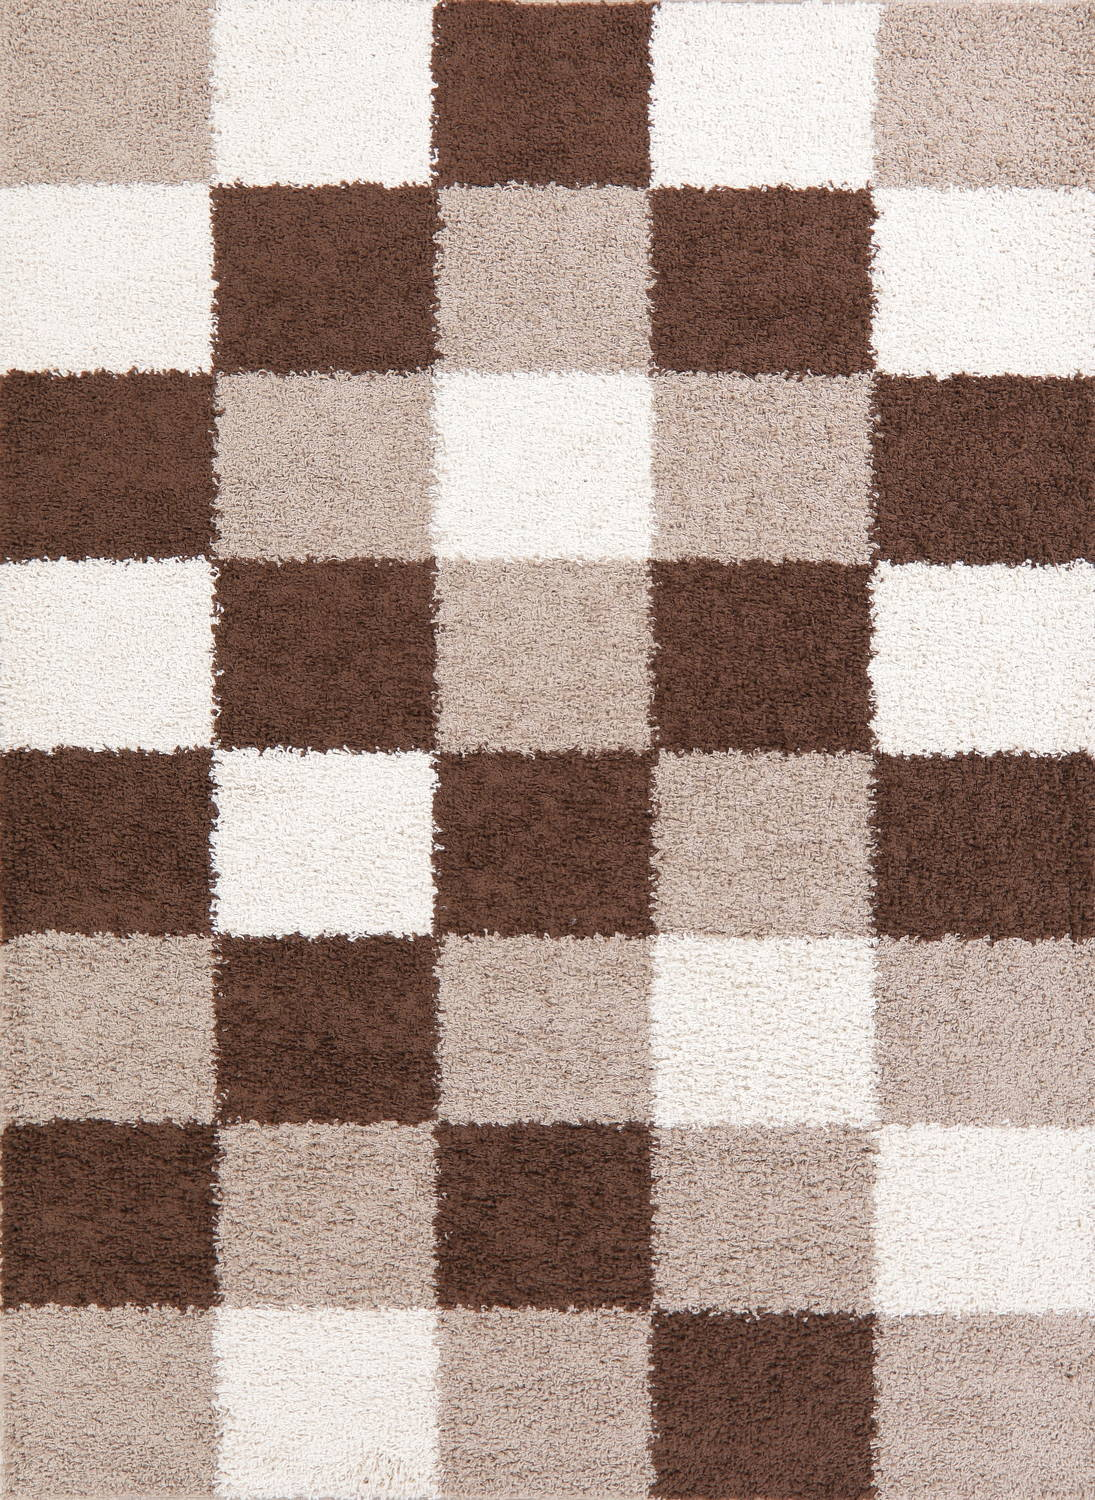 Checked Shaggy Turkish Oriental Rugs image 28